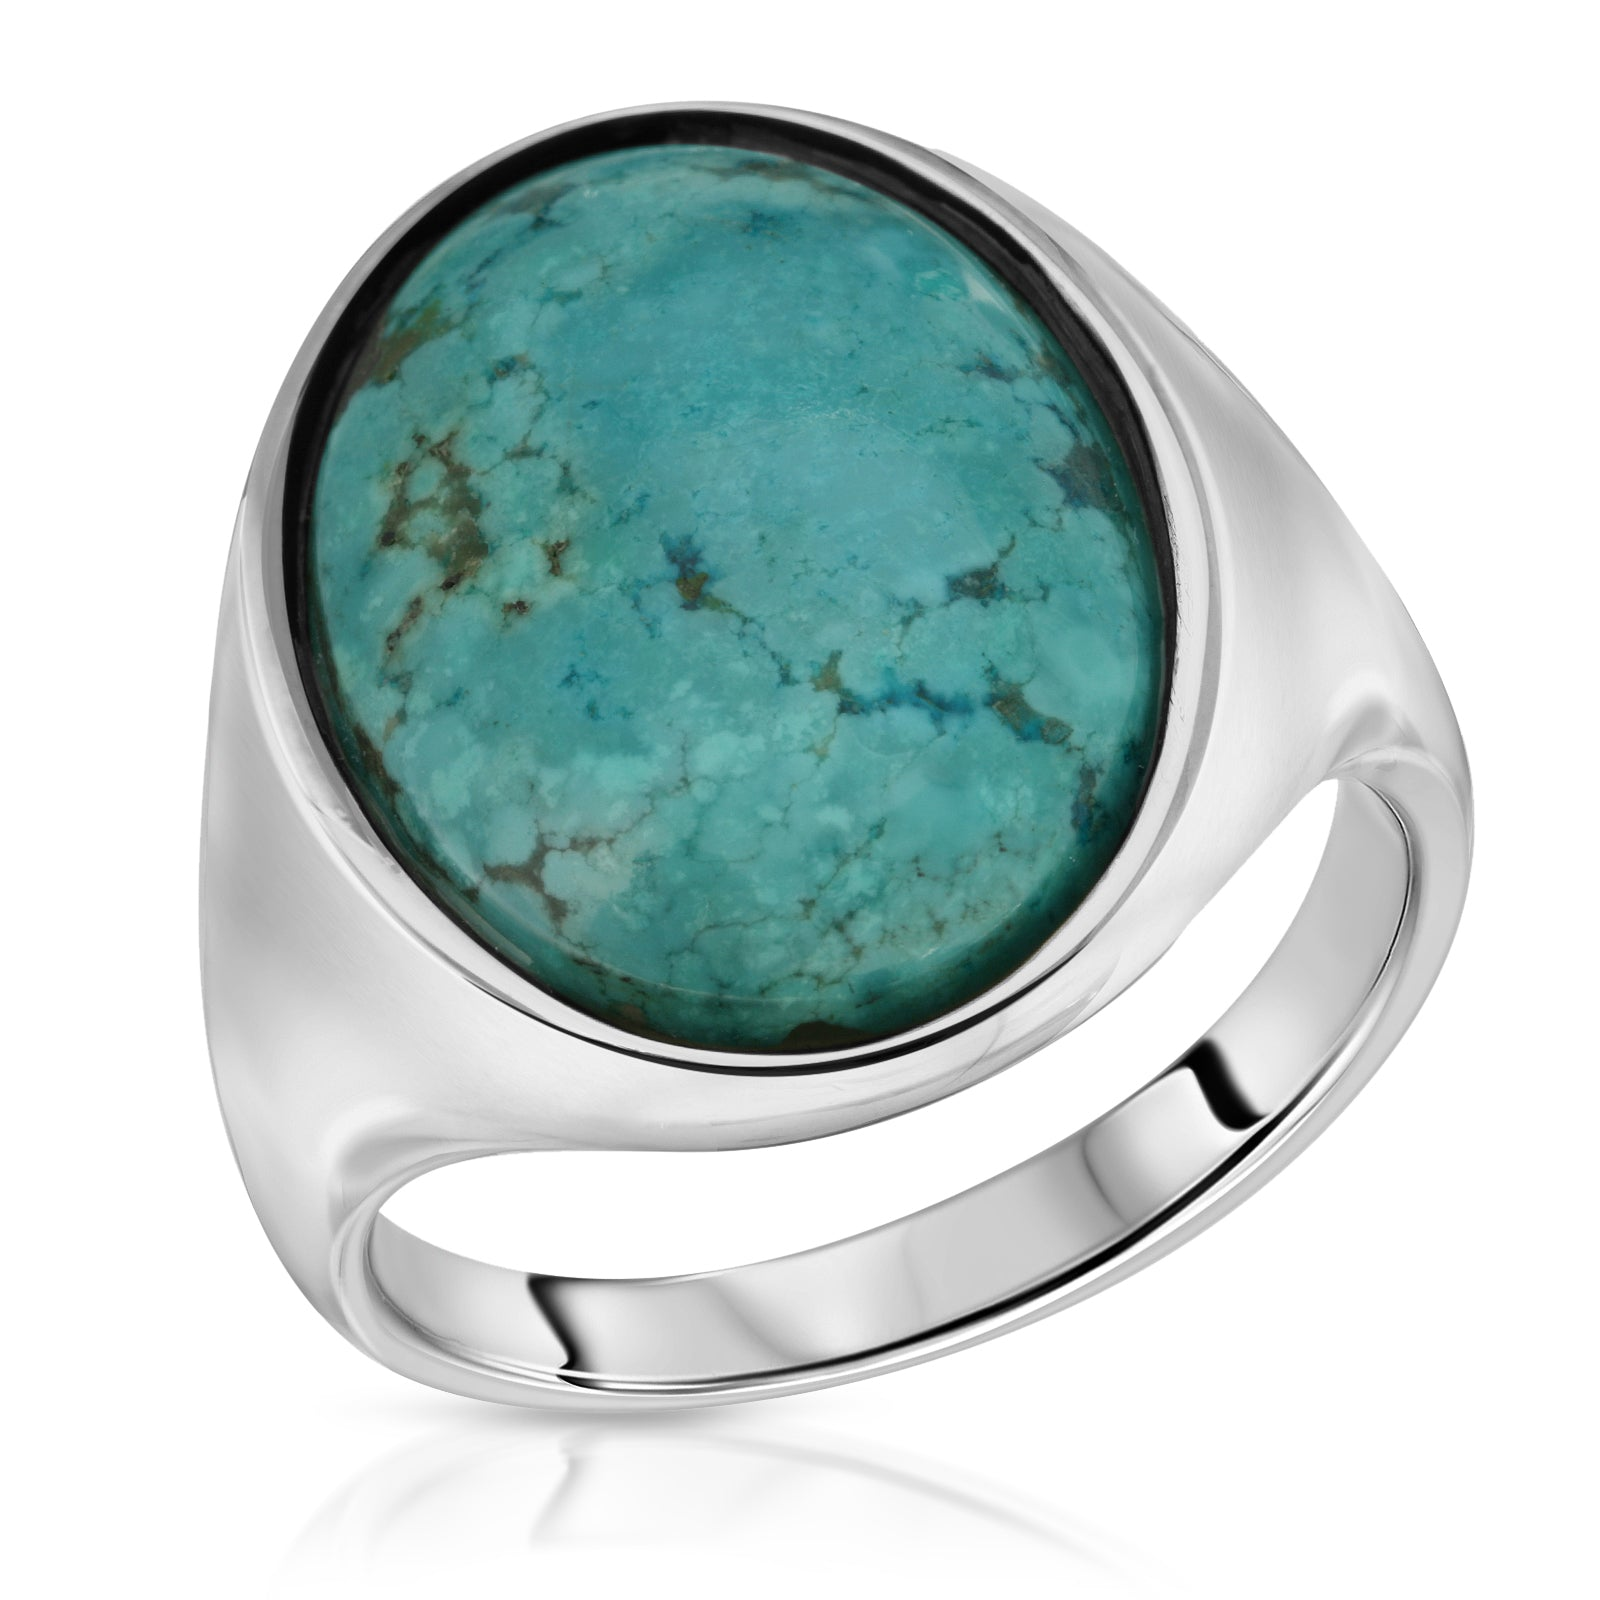 Blue Turquoise Oval Ring - The W Brothers